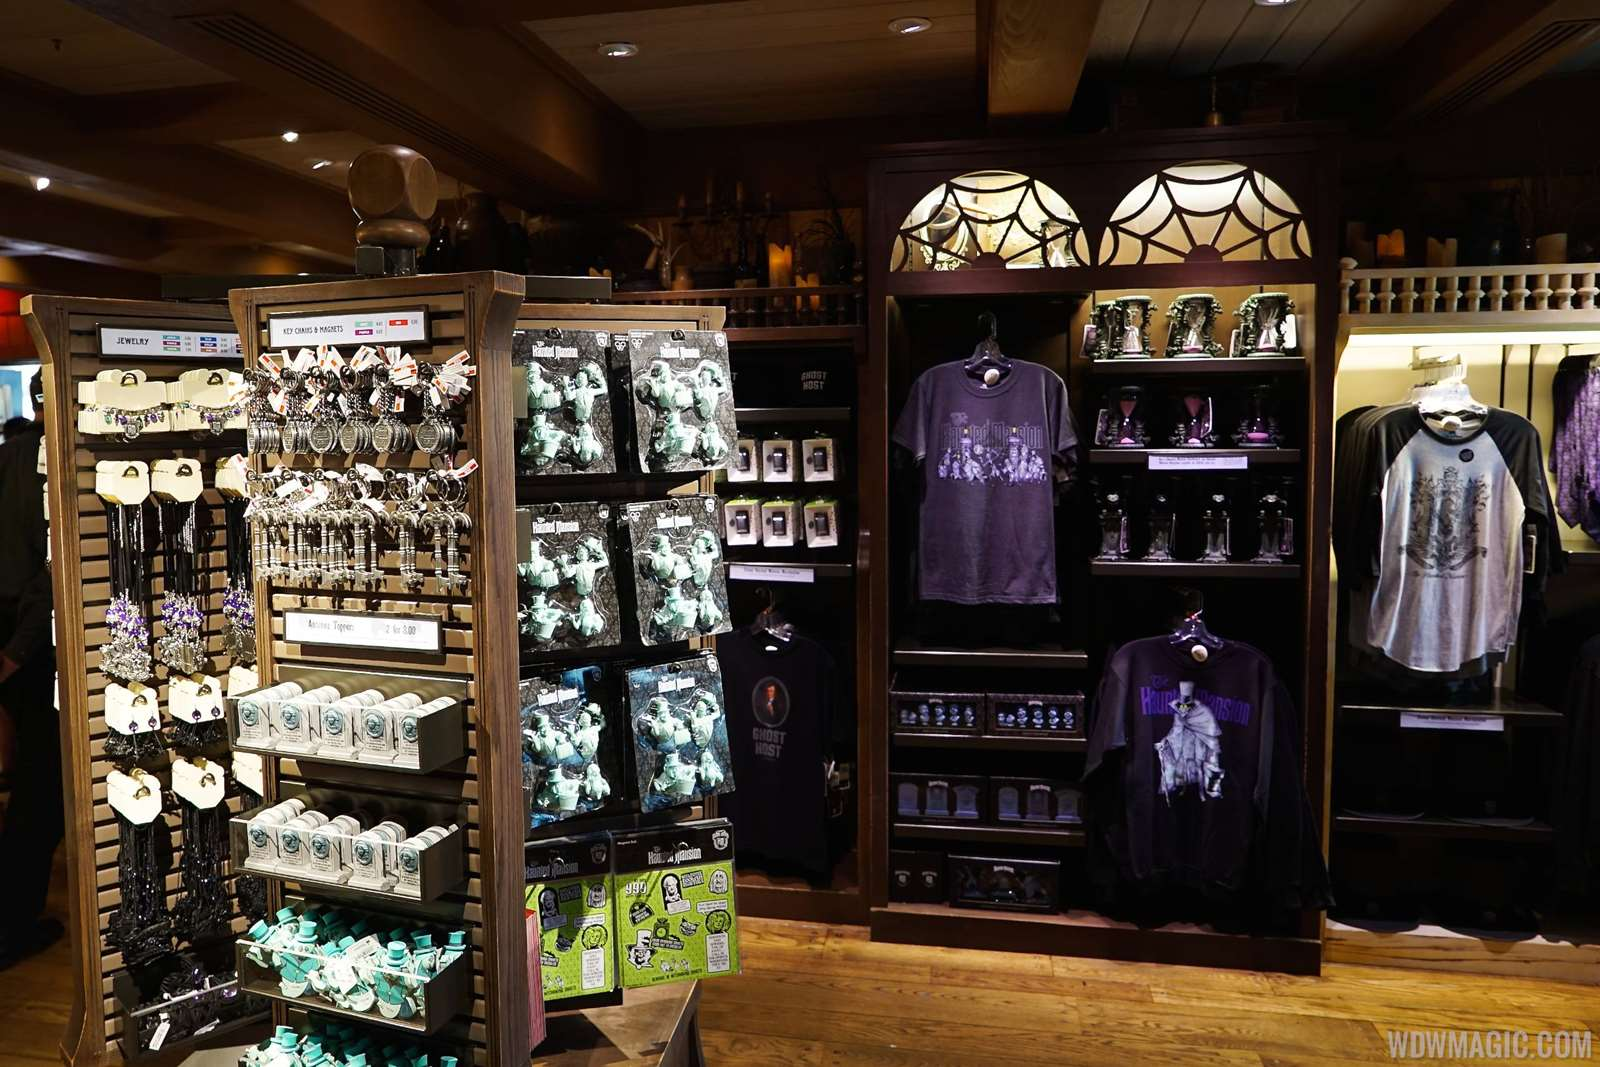 PHOTOS - First look inside the new Haunted Mansion gift shop ...